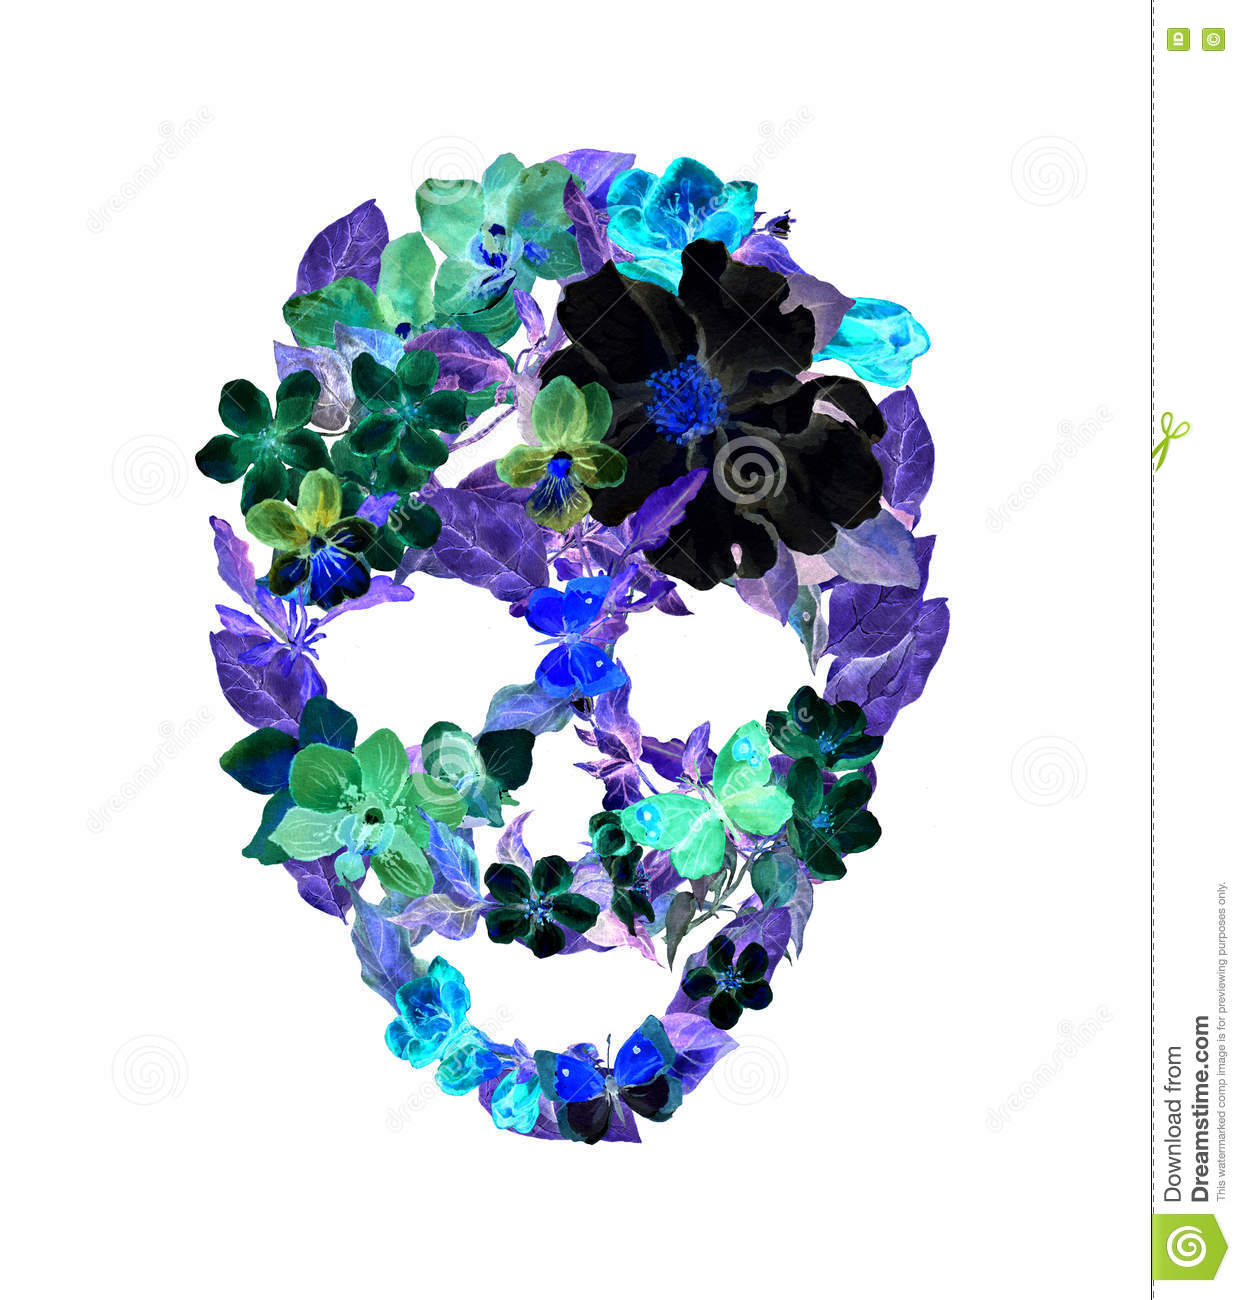 Vintage Day Of Dead Colorful Print: Skull With Flowers, Feathers. Watercolor In Vintage Boho